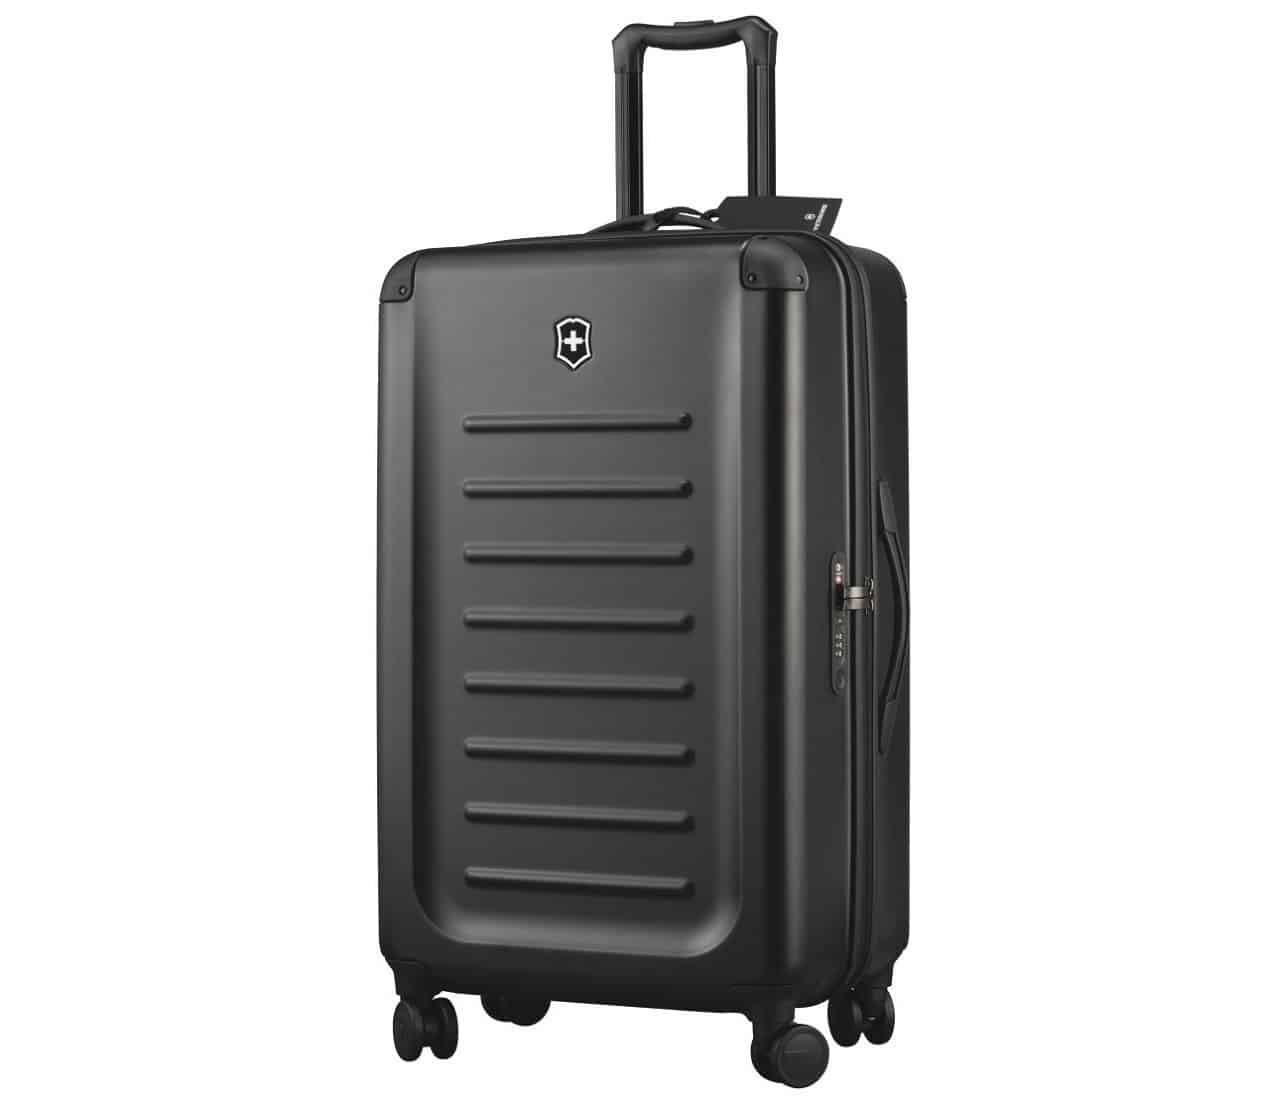 Victorinox Luggage Spectra 2.0 29 Inch, Black, One Size